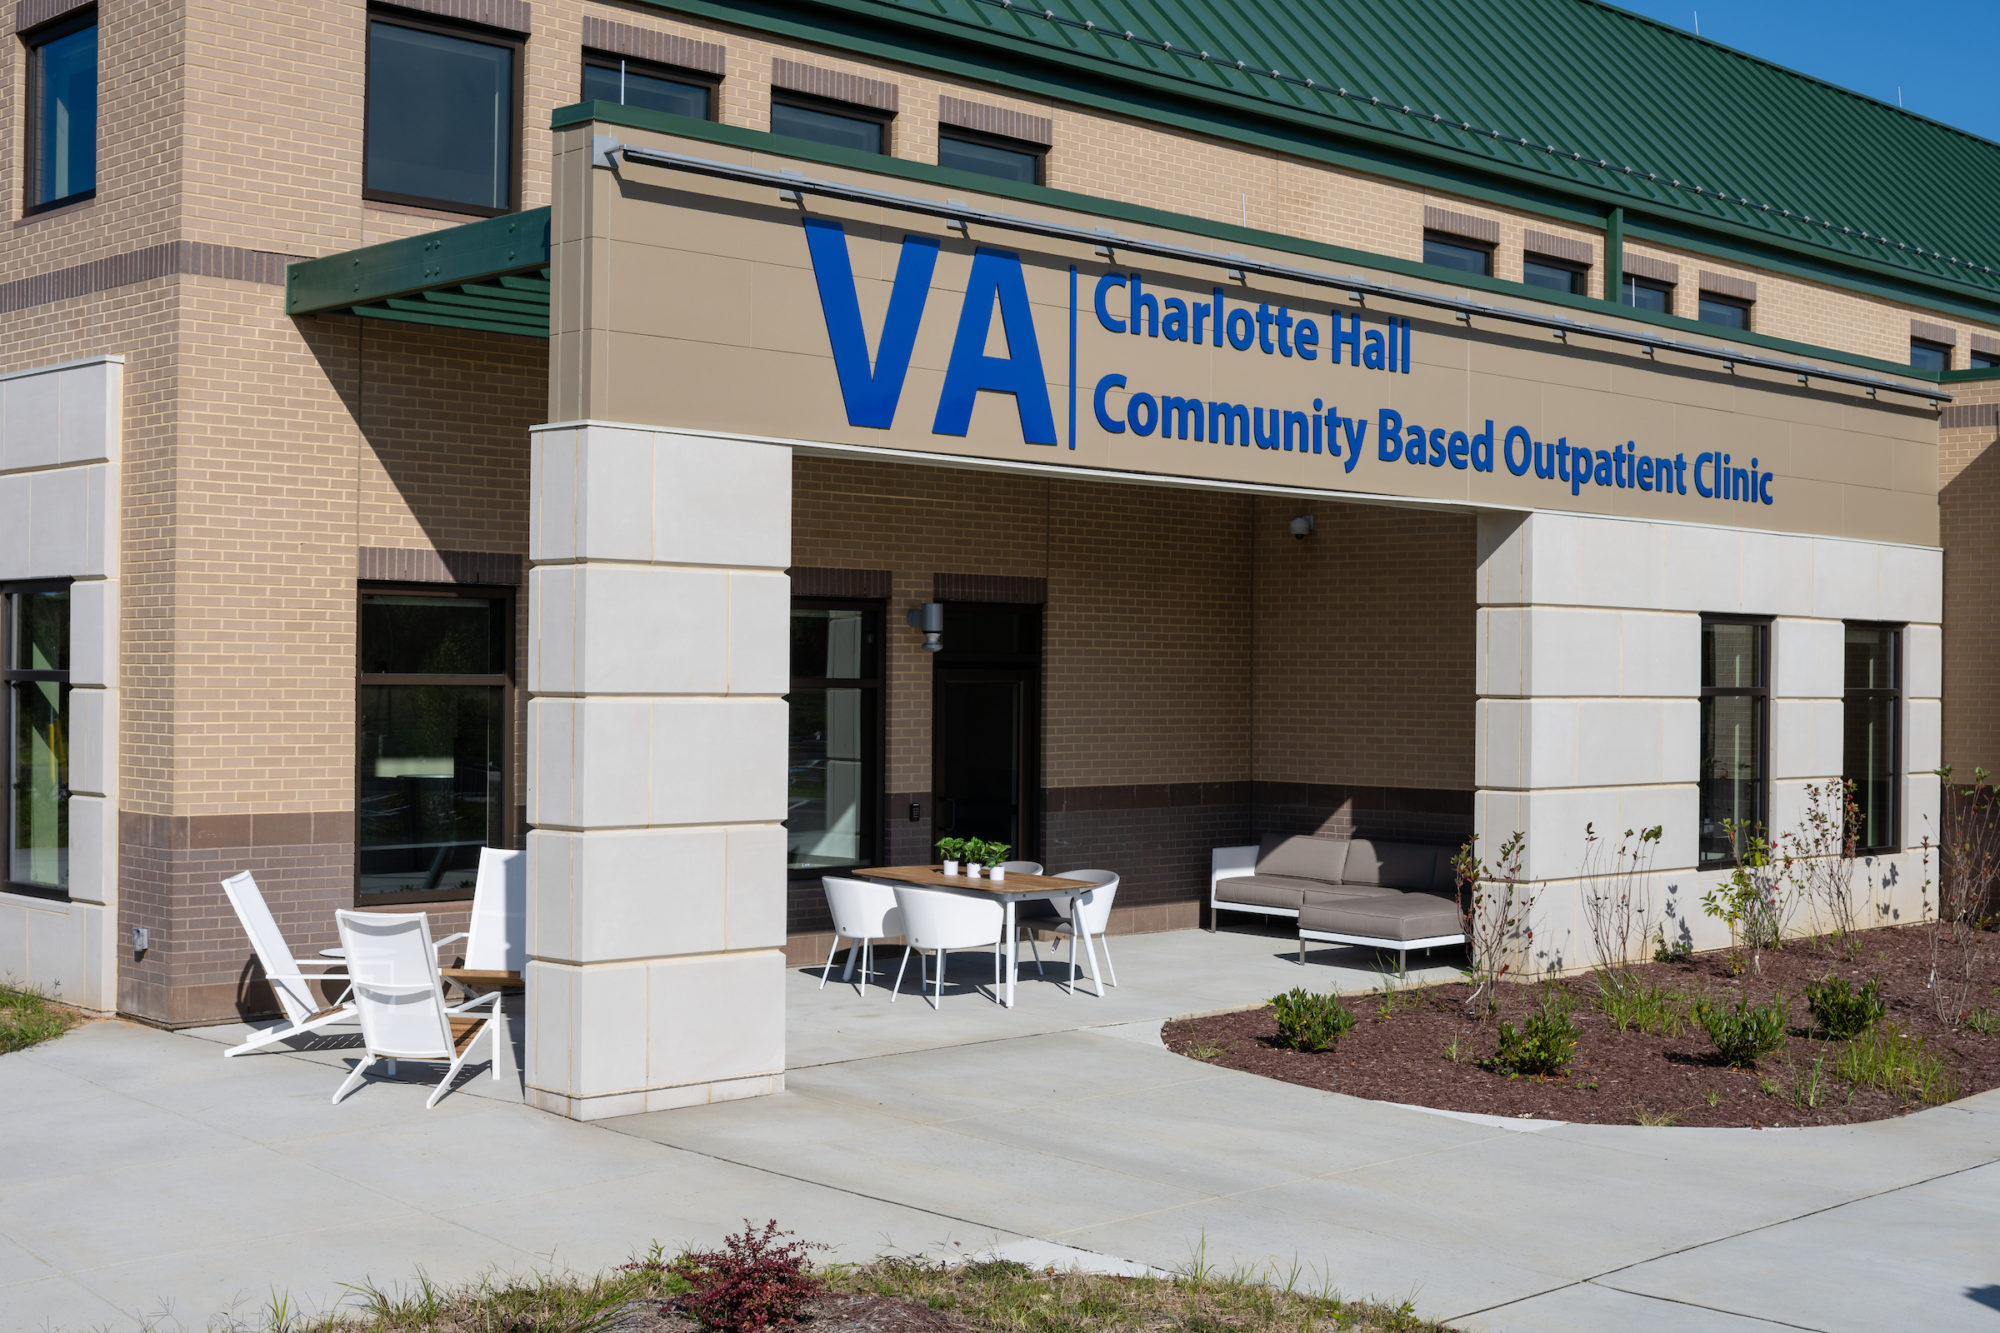 Charlotte Hall Veterans Affairs Outpatient Clinic | Harvey | Harvey-Cleary